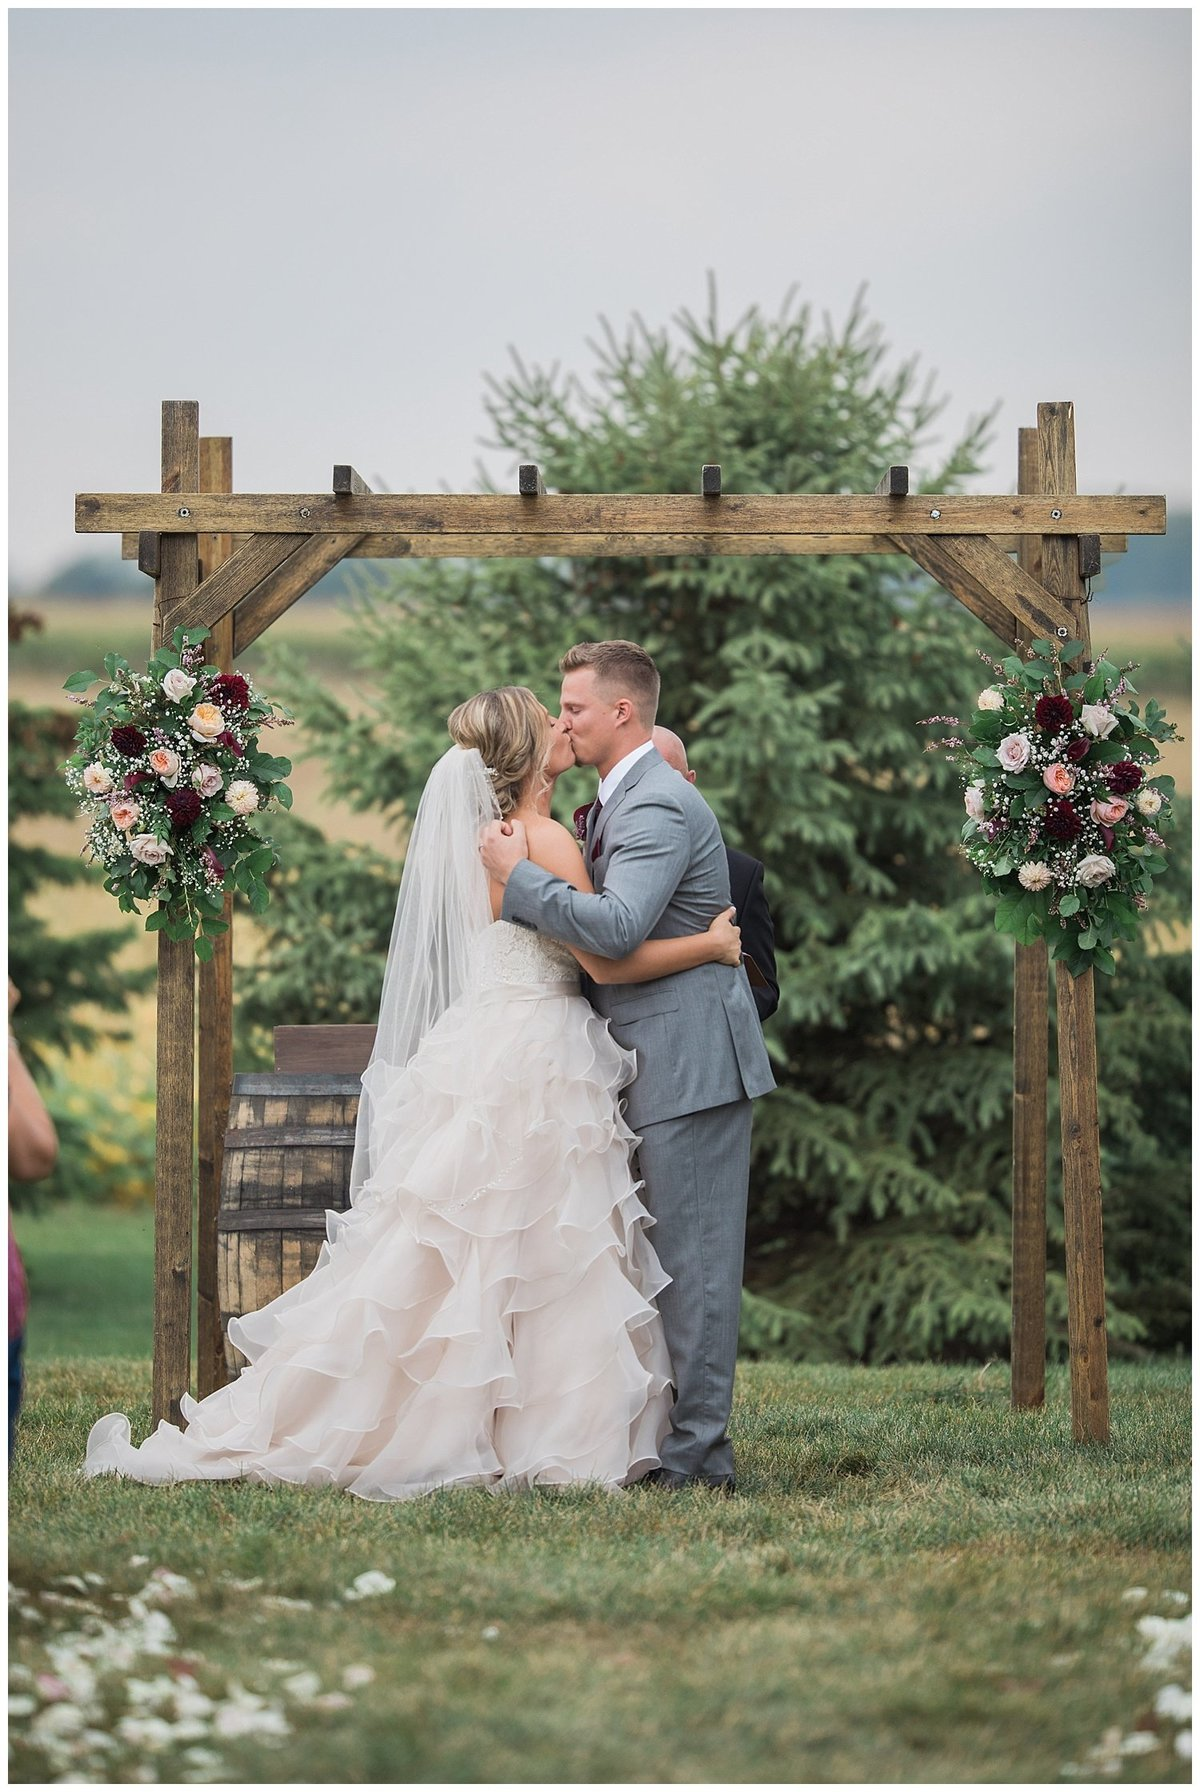 Romantic Wedding - South Dakota Wedding - Midwest Wedding_0308